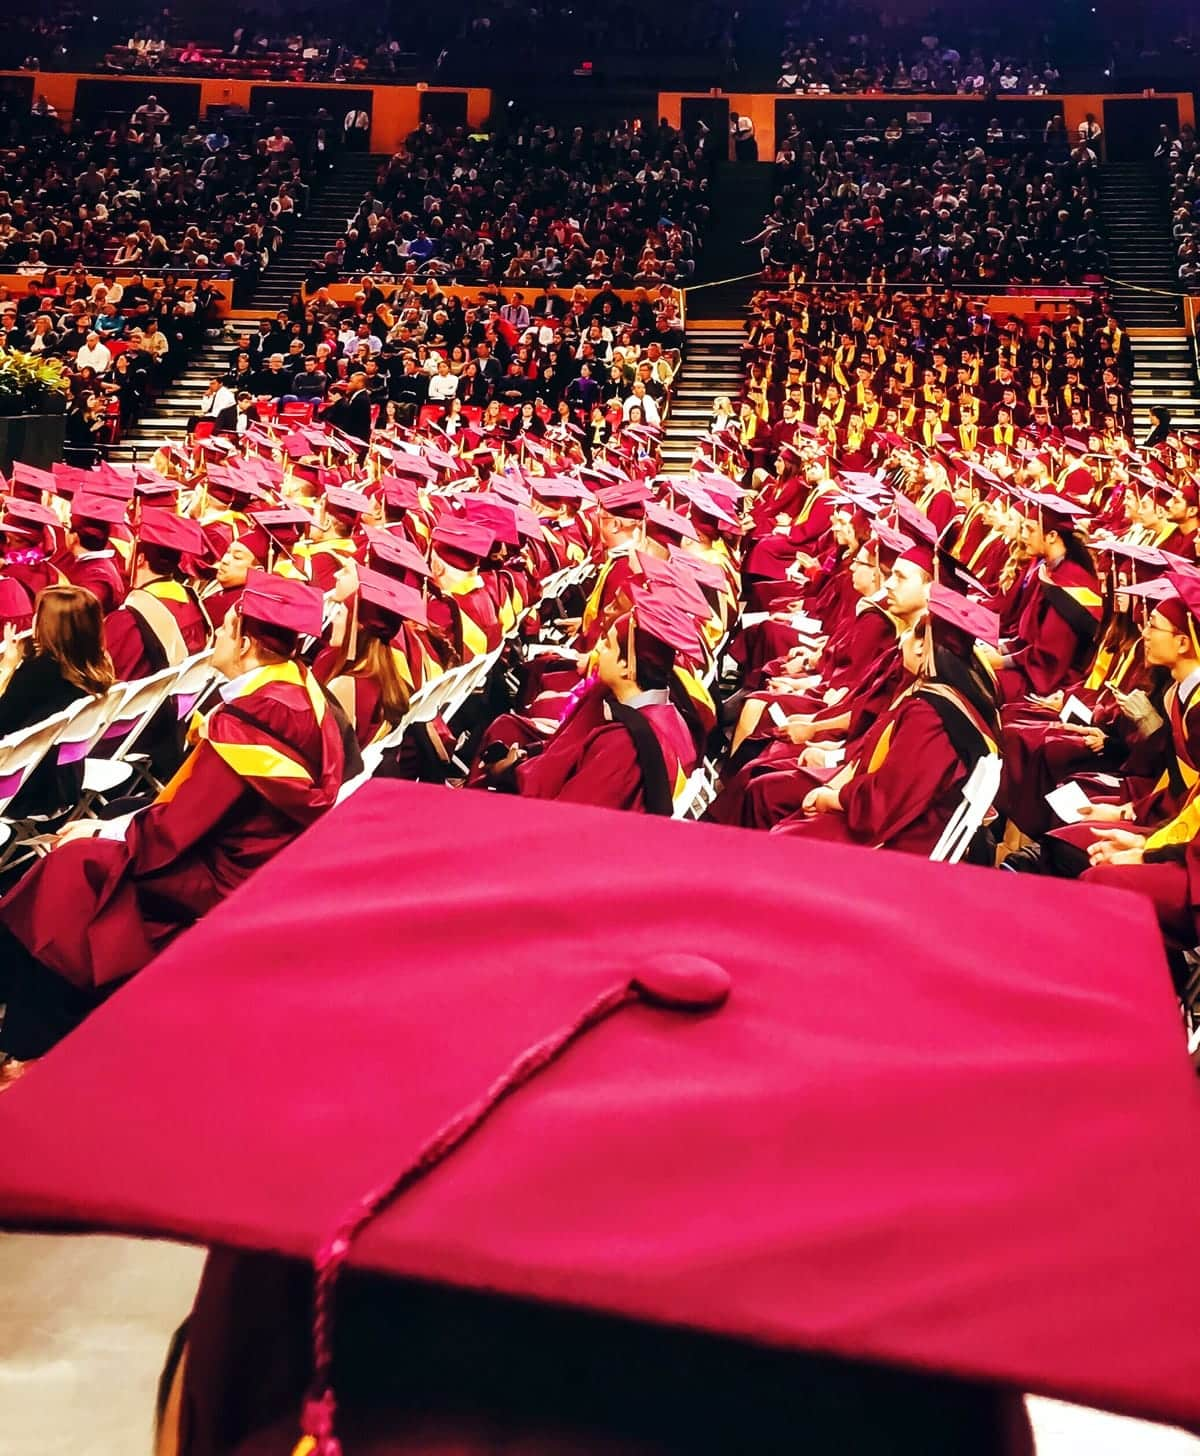 A photo of graduates in their red caps and gowns at a commencement ceremony.